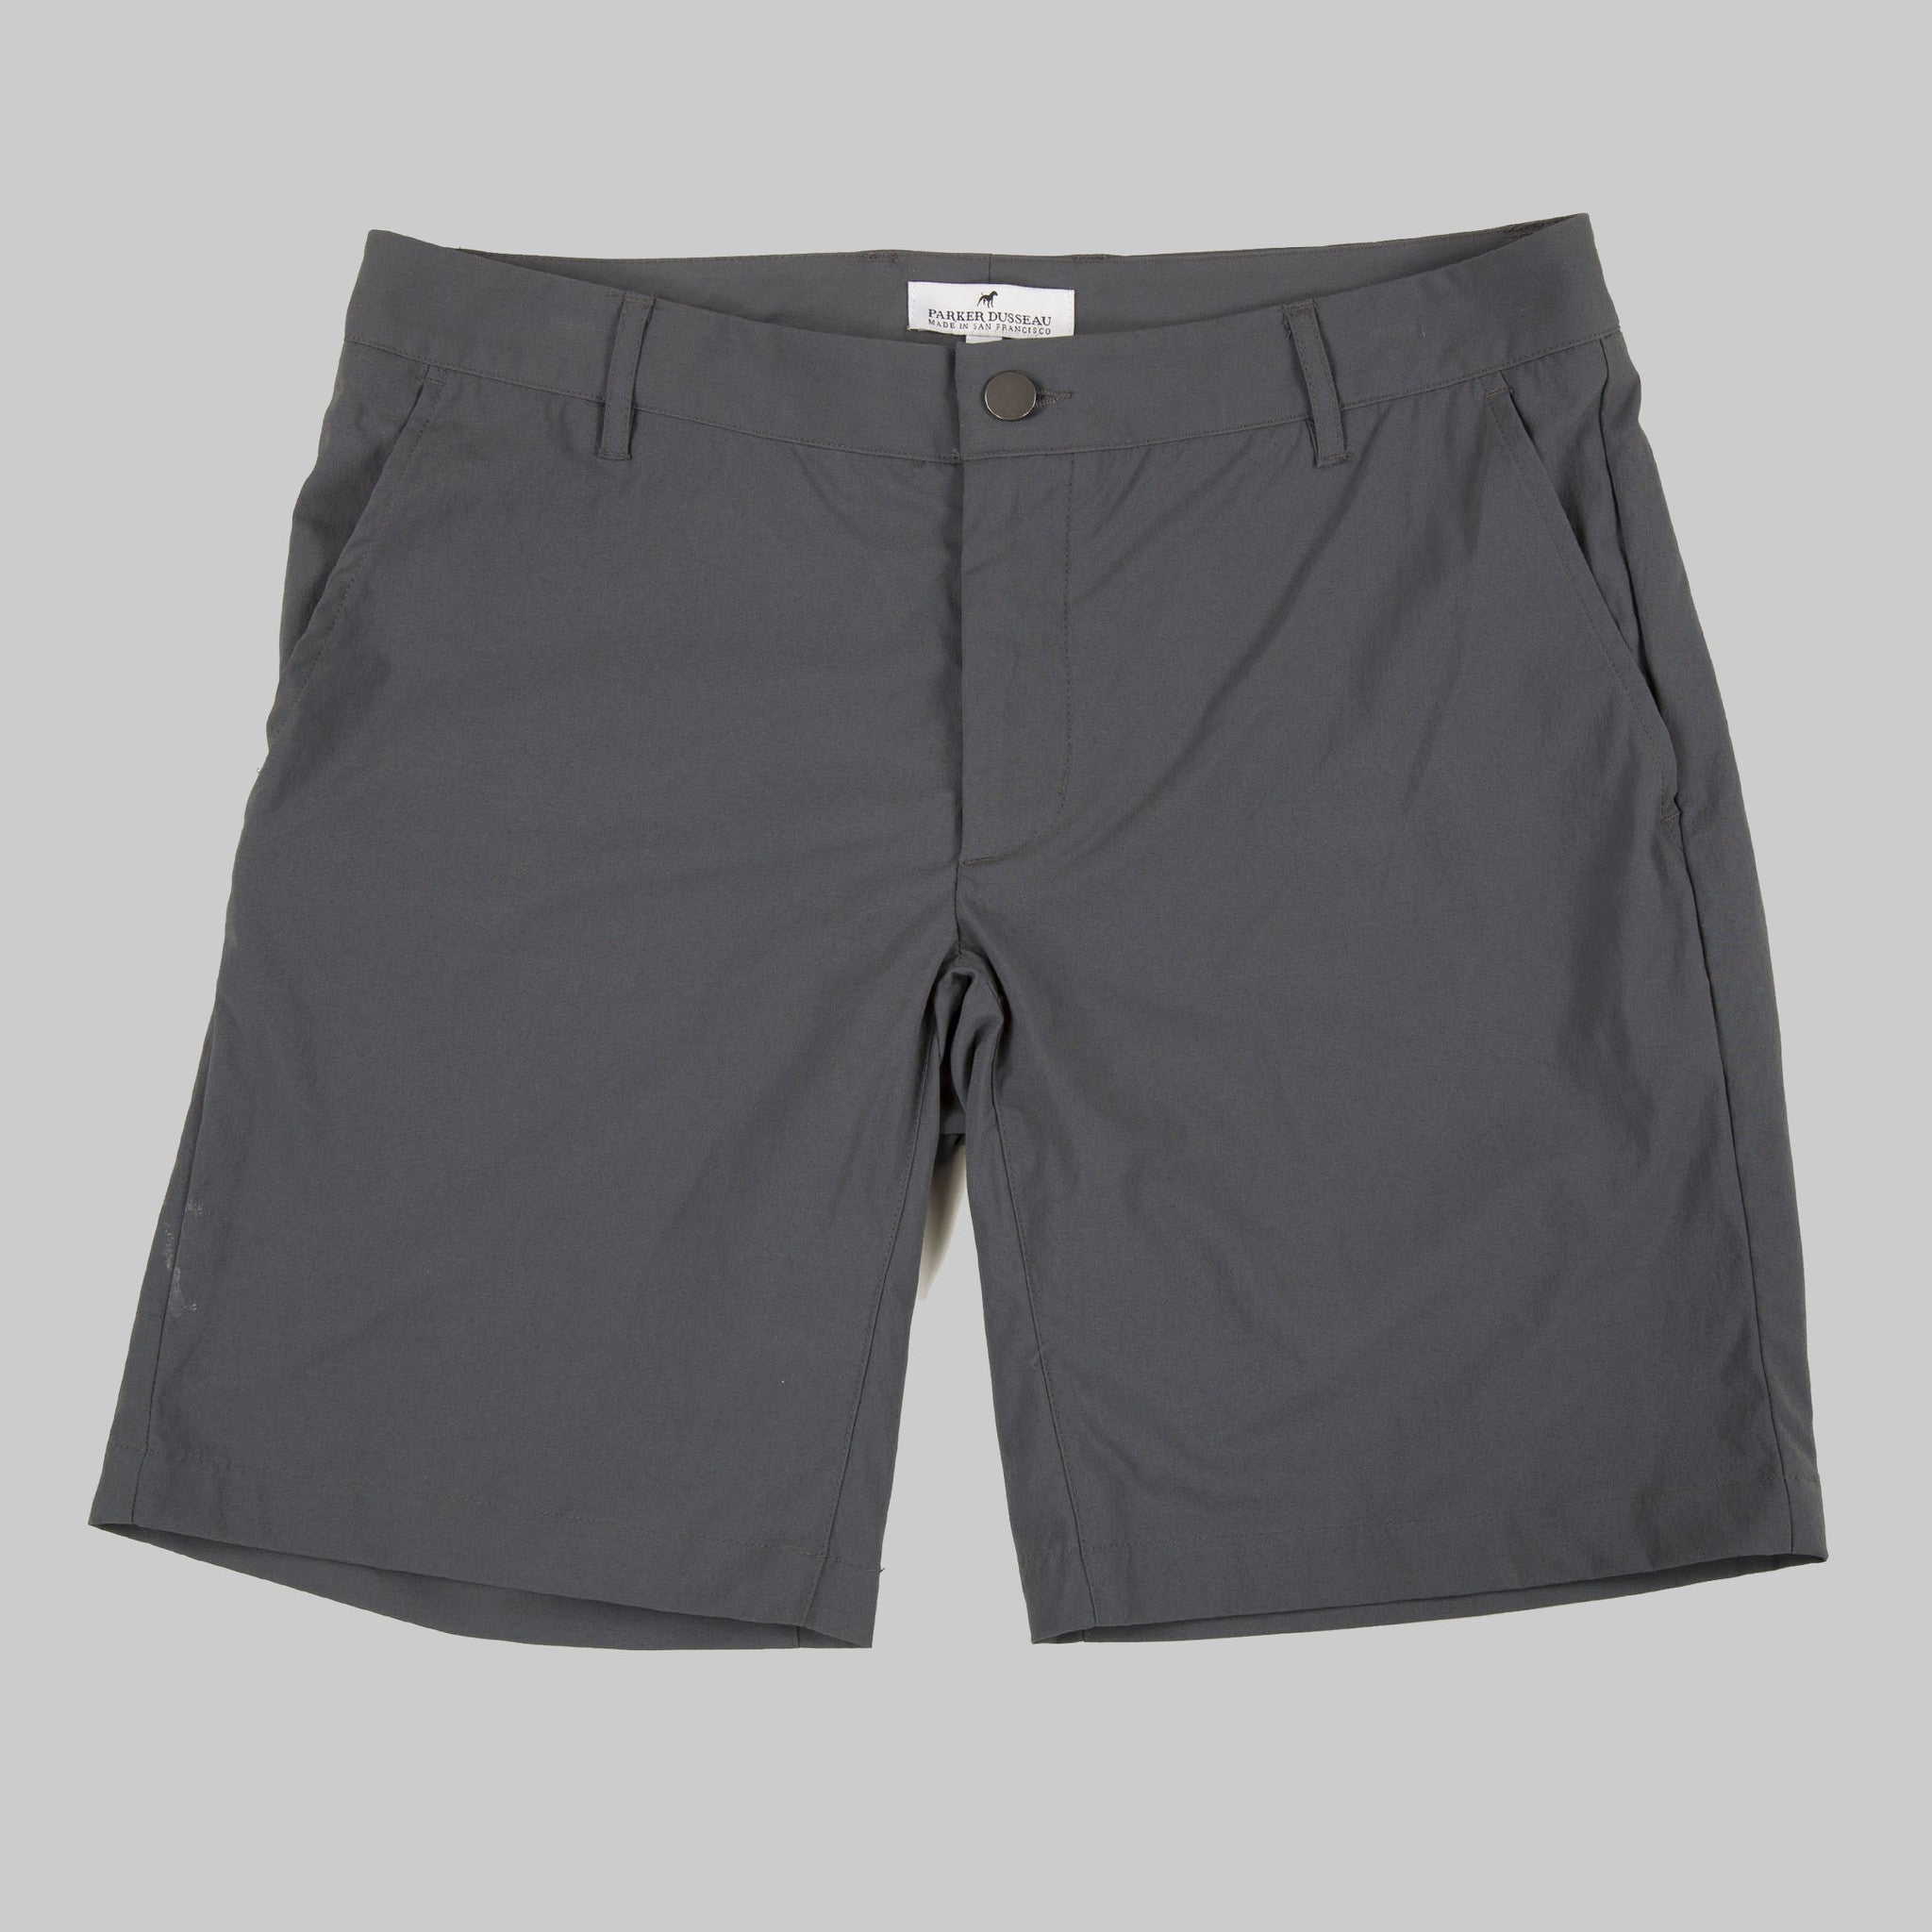 All Around Short - Charcoal Short- Parker Dusseau : Functional Menswear Essentials for the Always Ready Lifestyle. Based in San Francisco, California